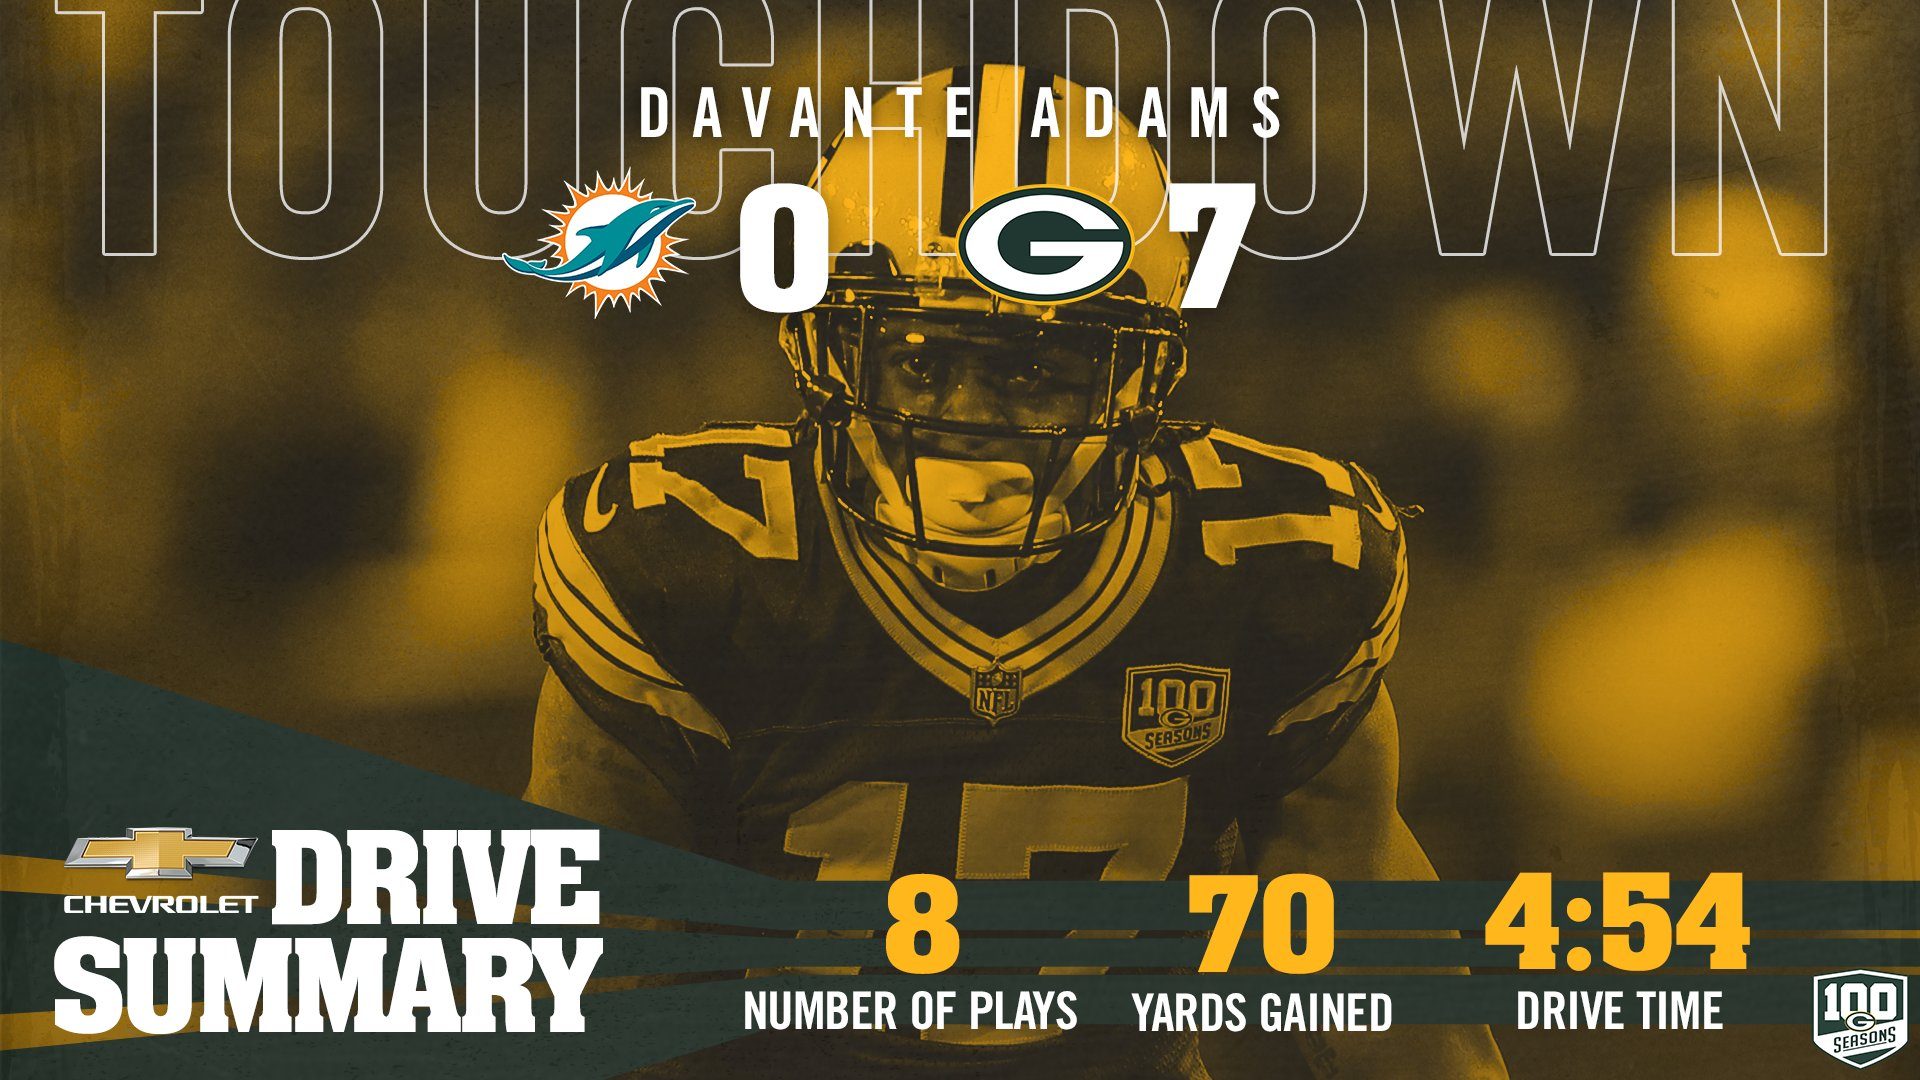 #Packers get on the board first!   #MIAvsGB #GoPackGo https://t.co/hjfuVWJ2tP